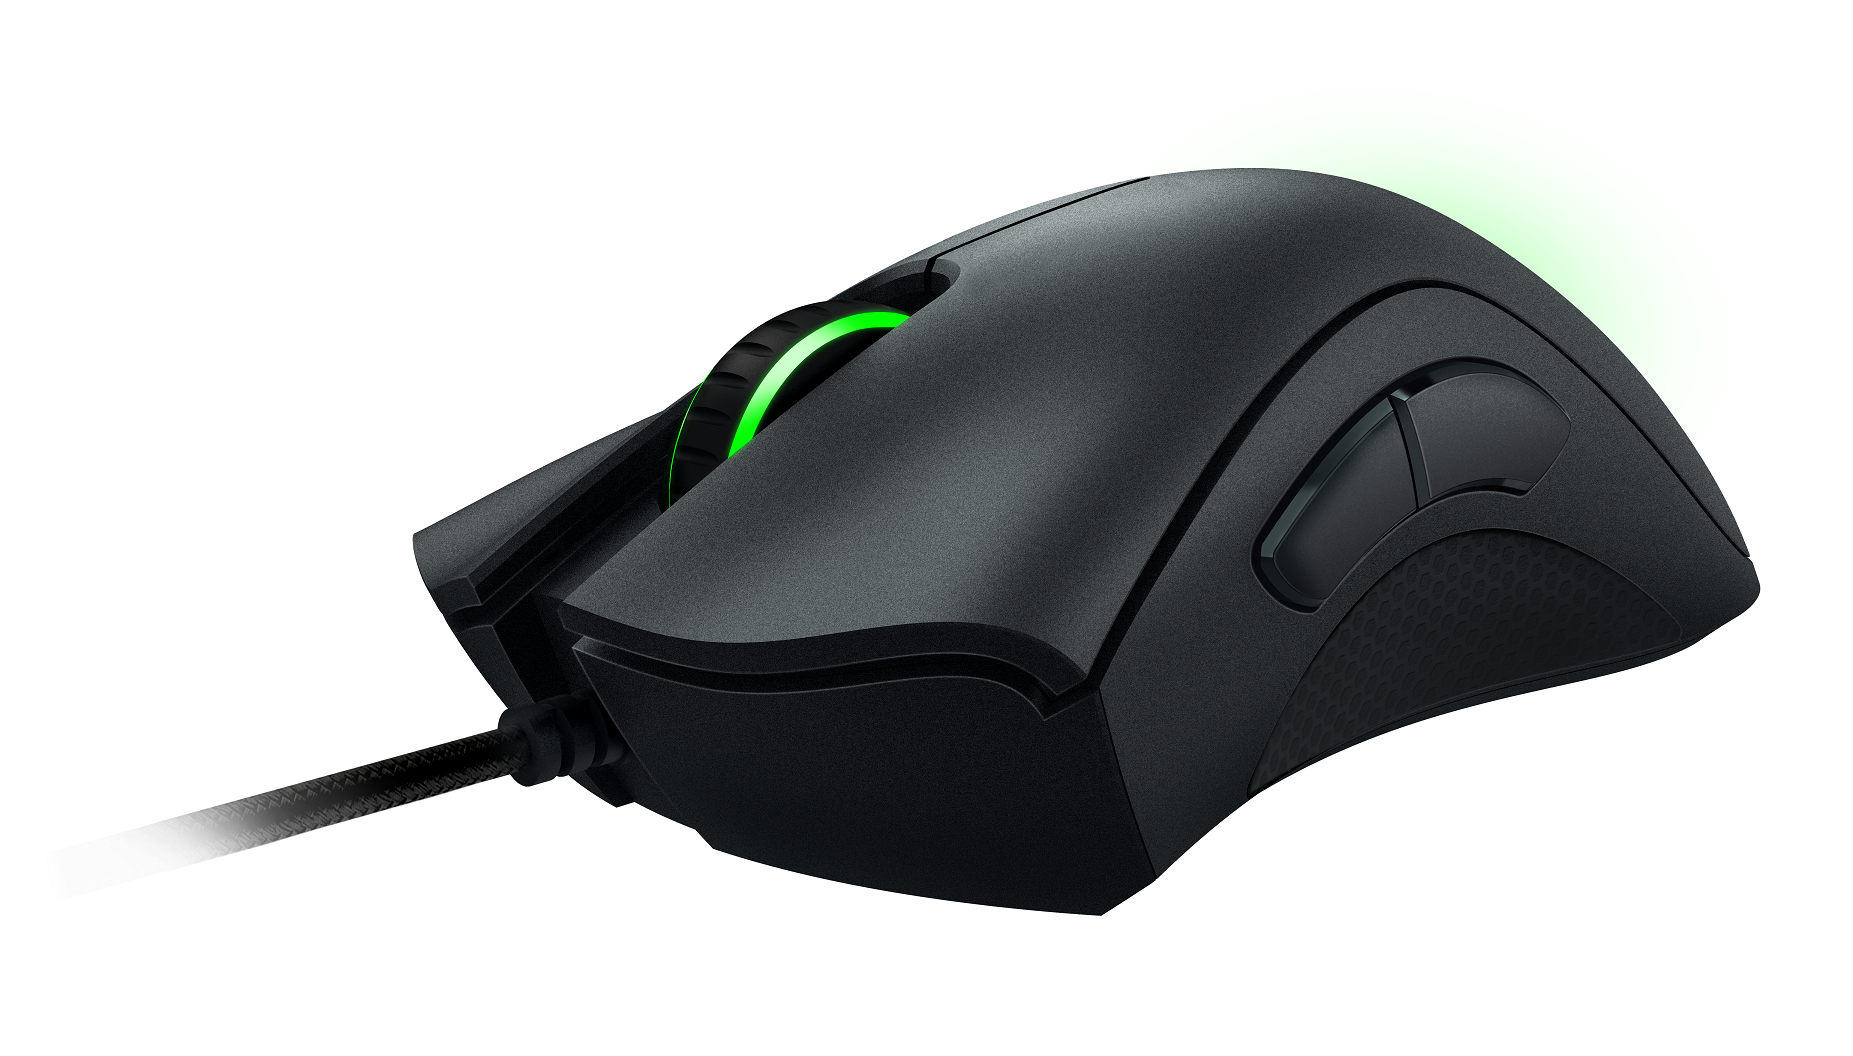 Chuột Razer DeathAdder Essential Right-Handed Gaming